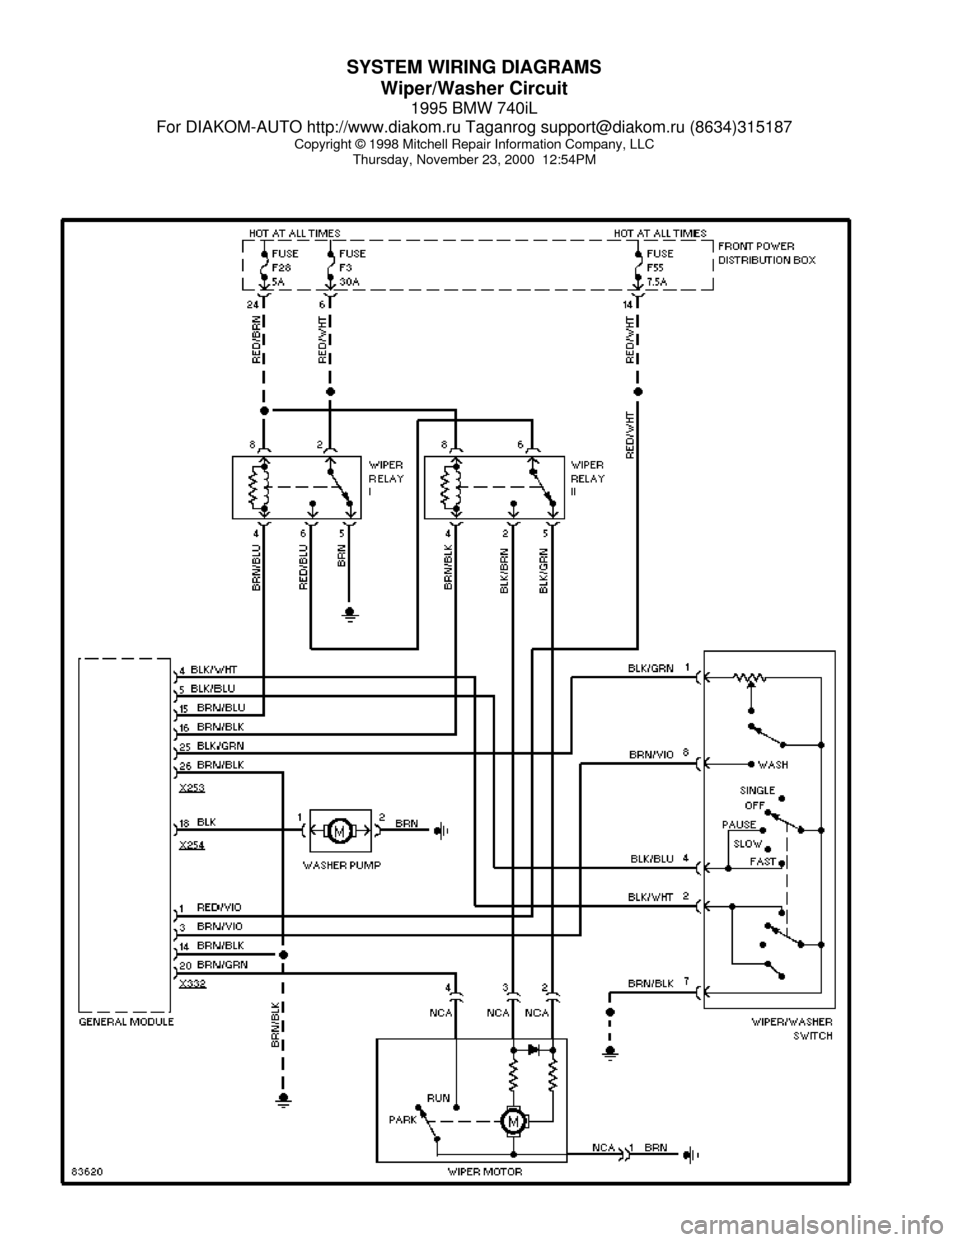 Where Can I Download The Fuse Wiring Diagram For A 2001 Manual Guide